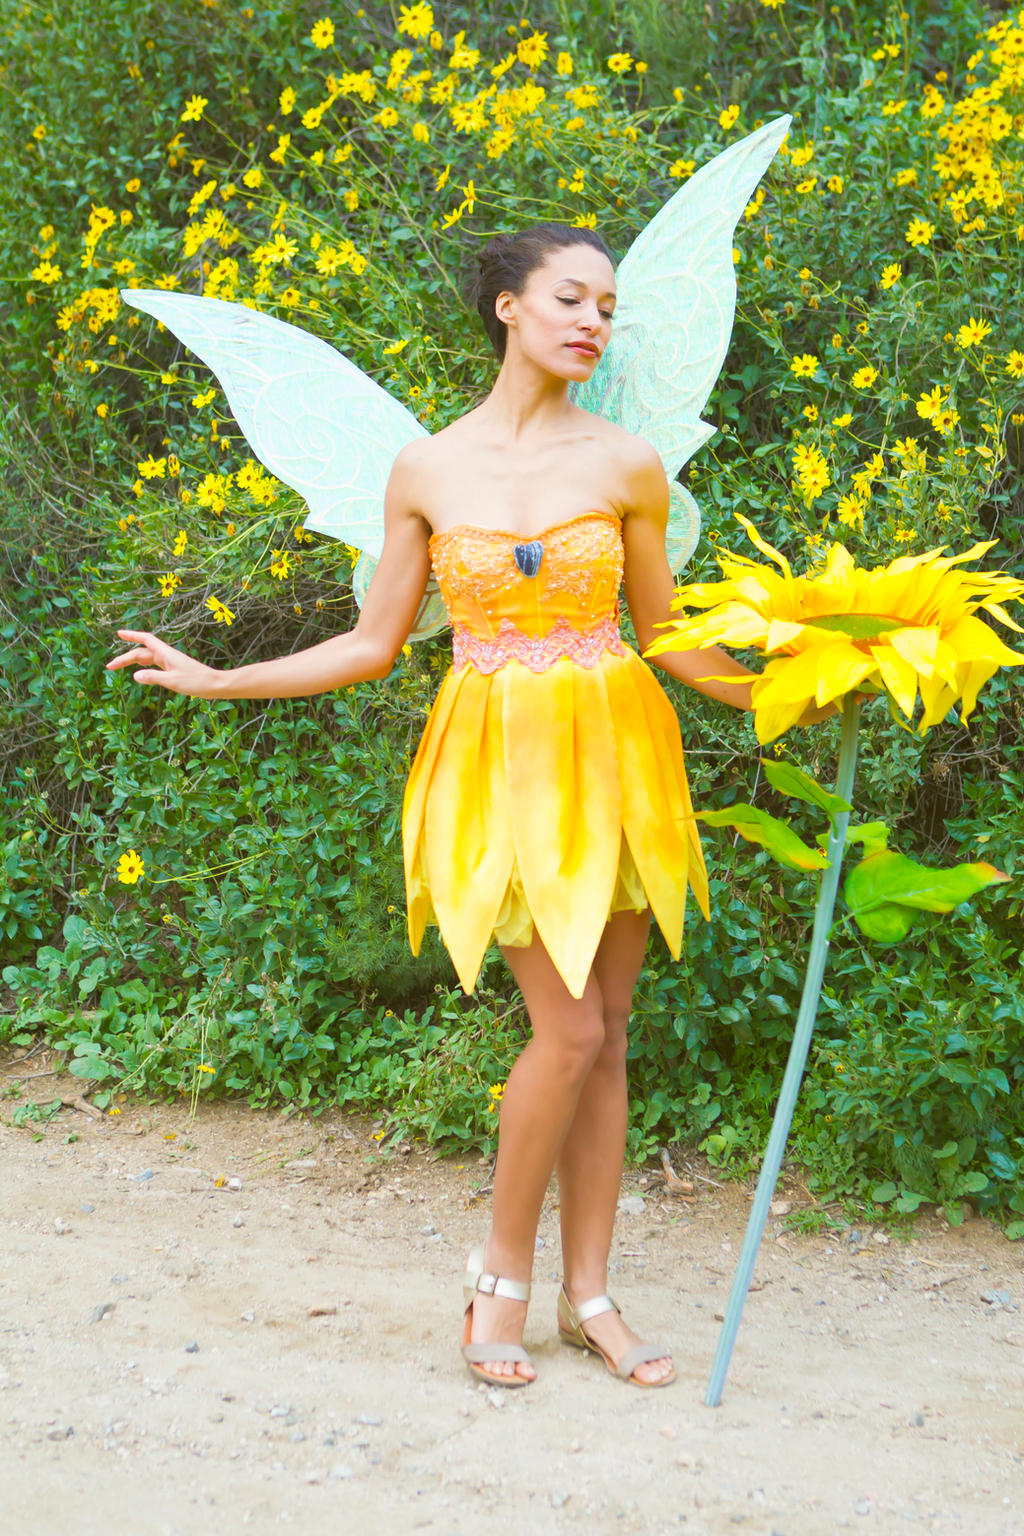 ... Pixie Hollow Iridessa Cosplay Costume by glimmerwood  sc 1 st  DeviantArt & Pixie Hollow Iridessa Cosplay Costume by glimmerwood on DeviantArt